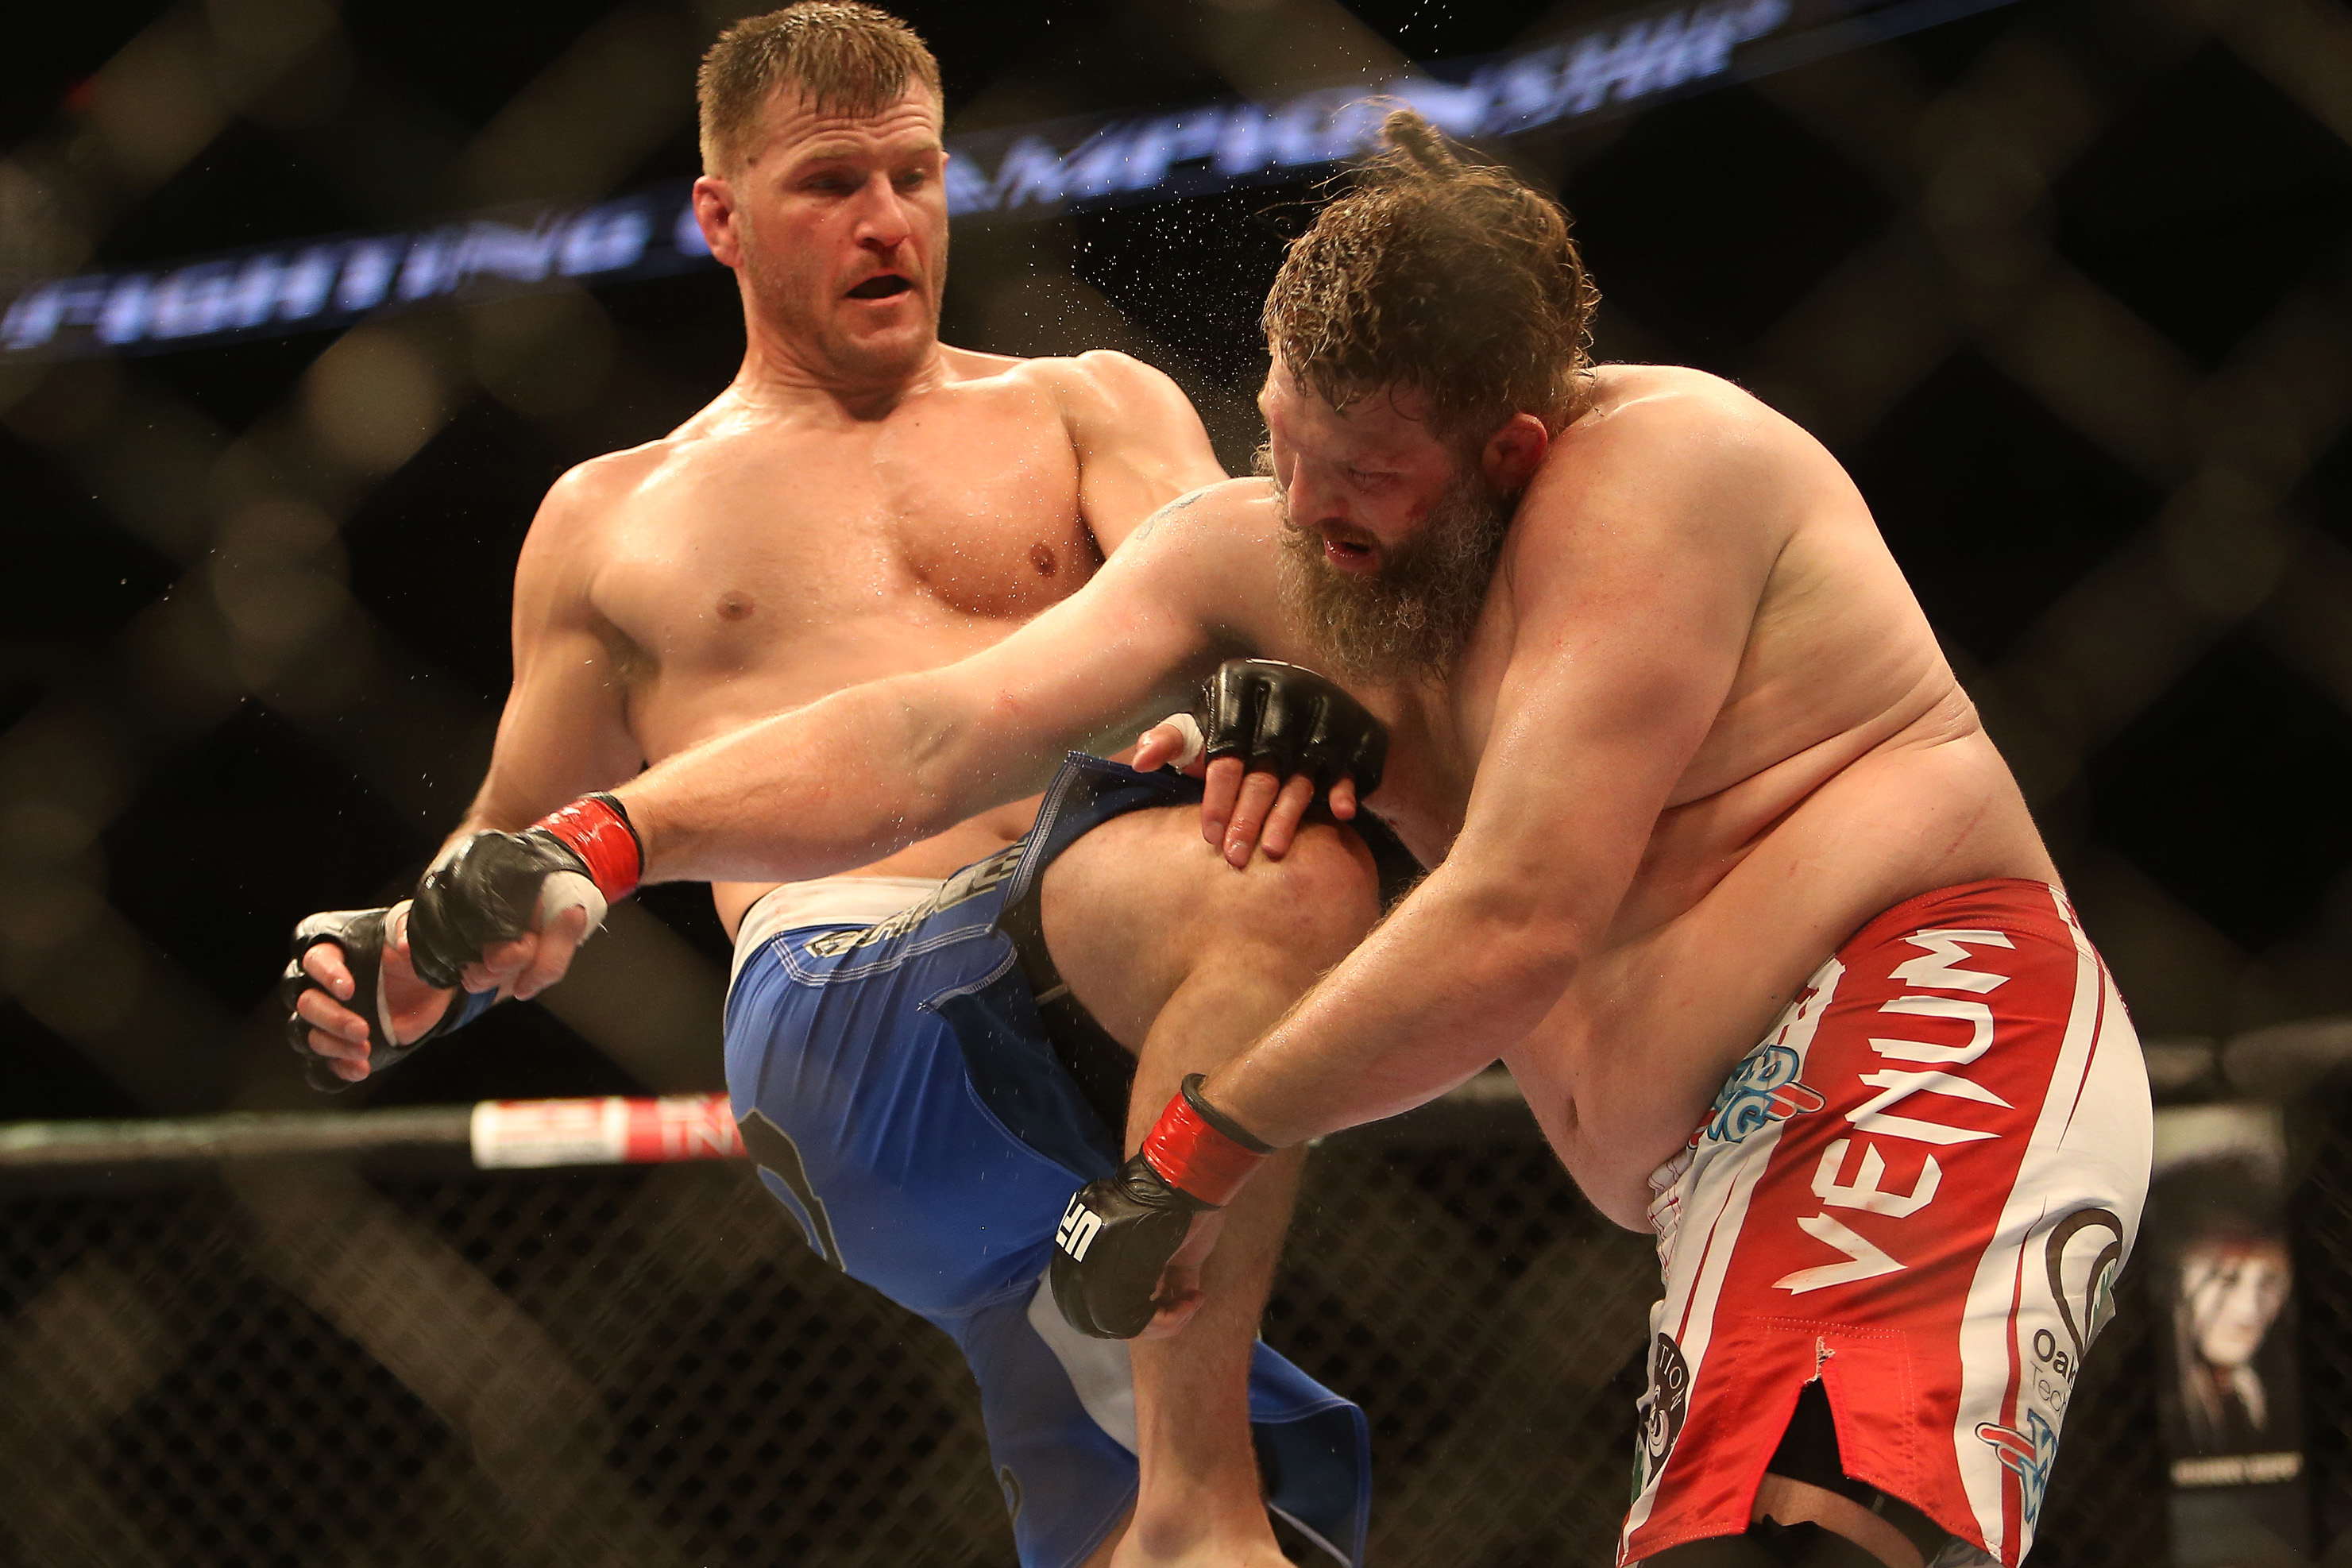 Roy Nelson takes a knee from Stipe Miocic during their heavyweight fight at UFC 161. (USA Today)